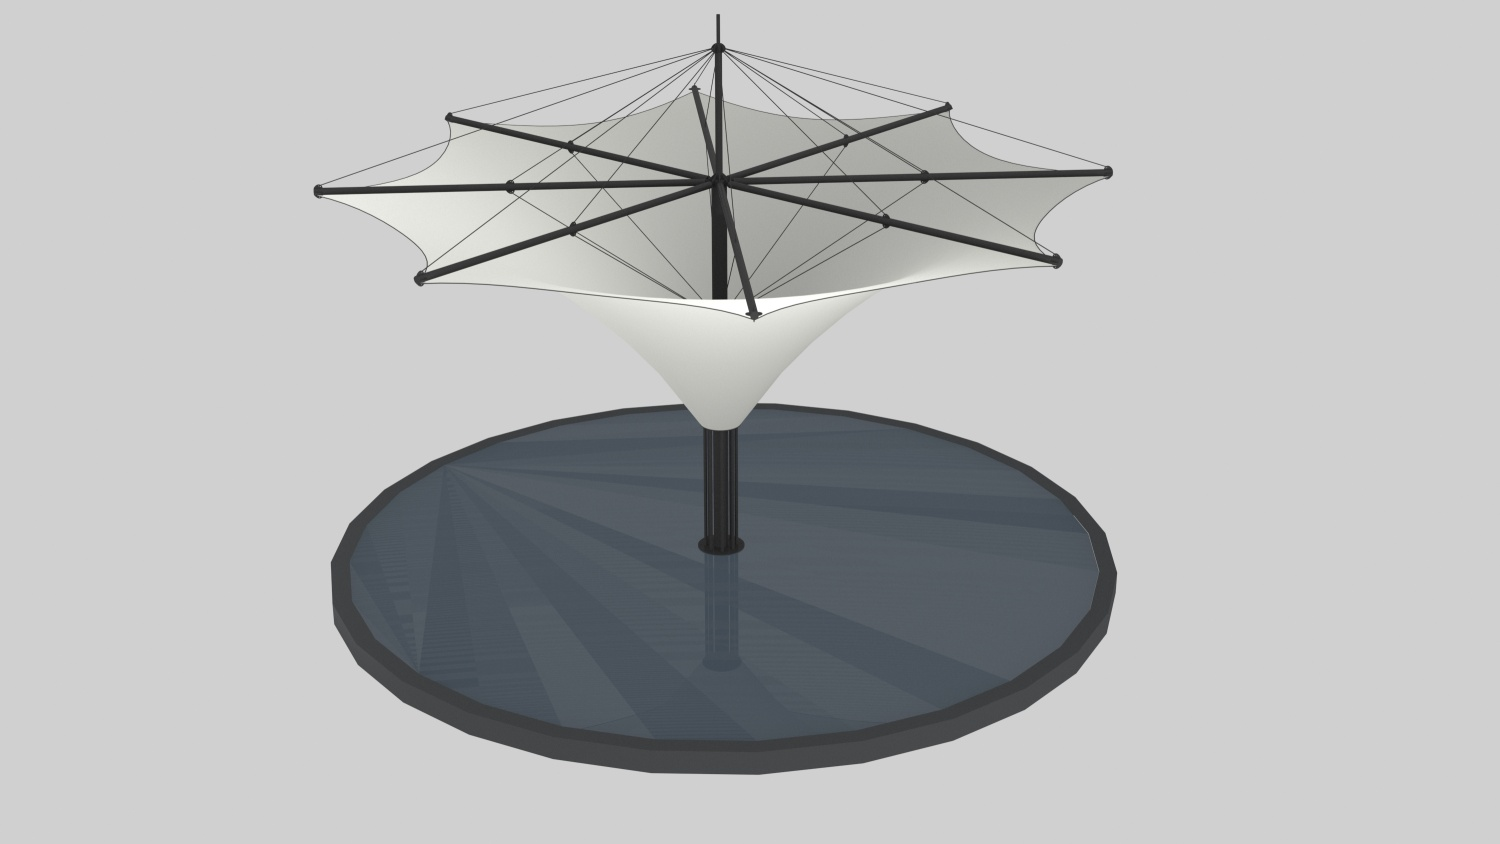 Exclusive Umbrella tent 2